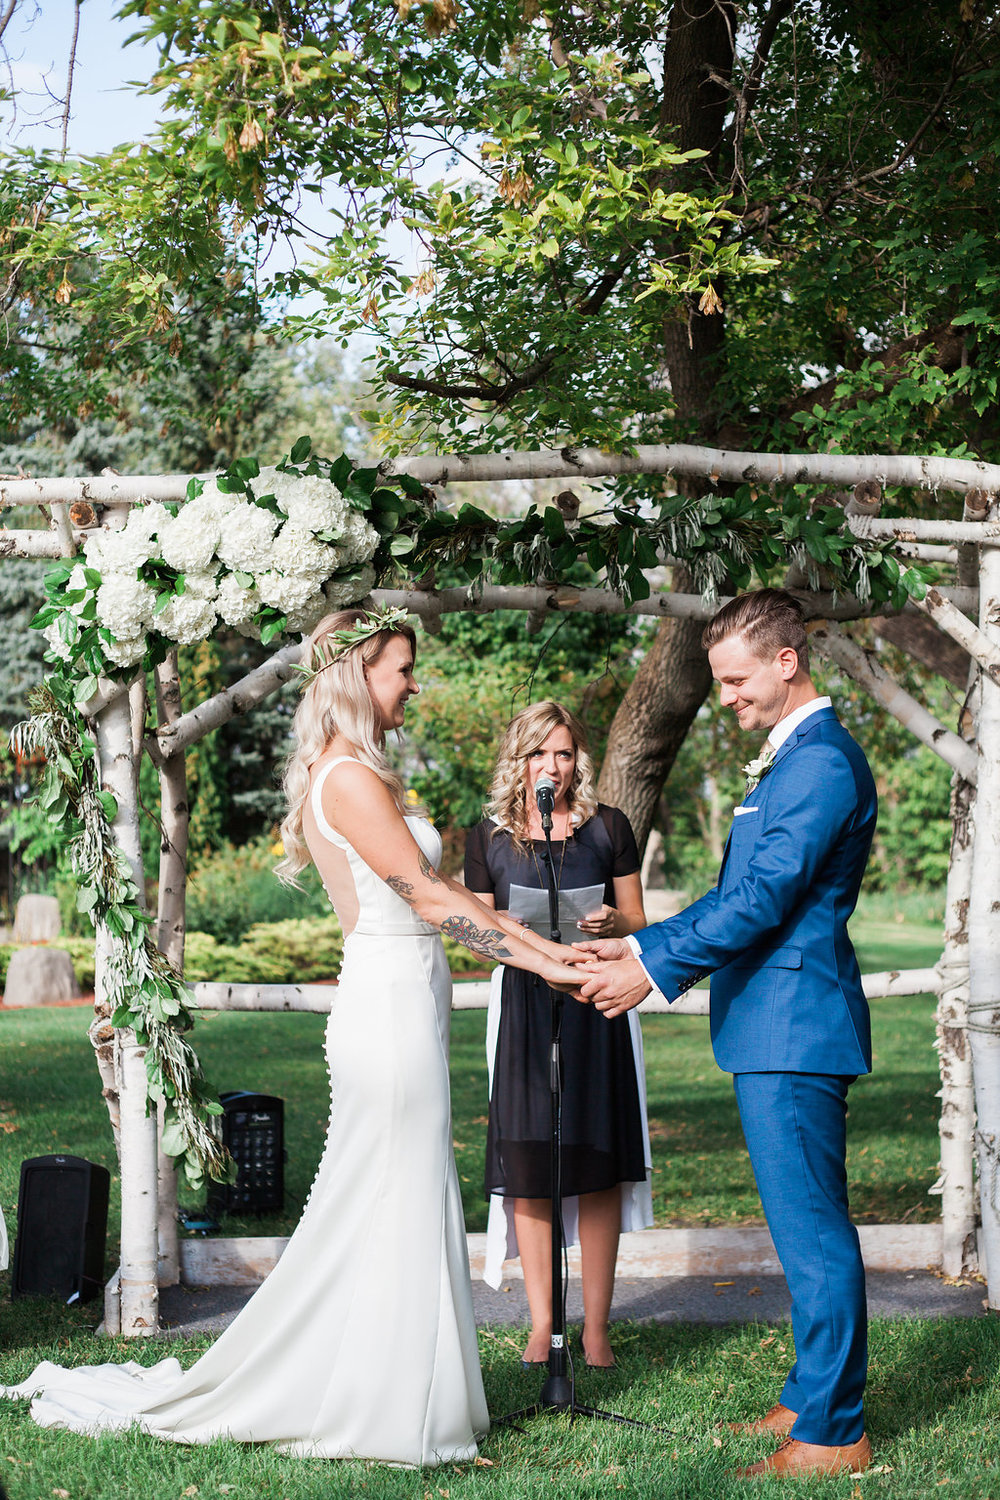 Evergreen Village Wedding - Outdoor Wedding Ceremony